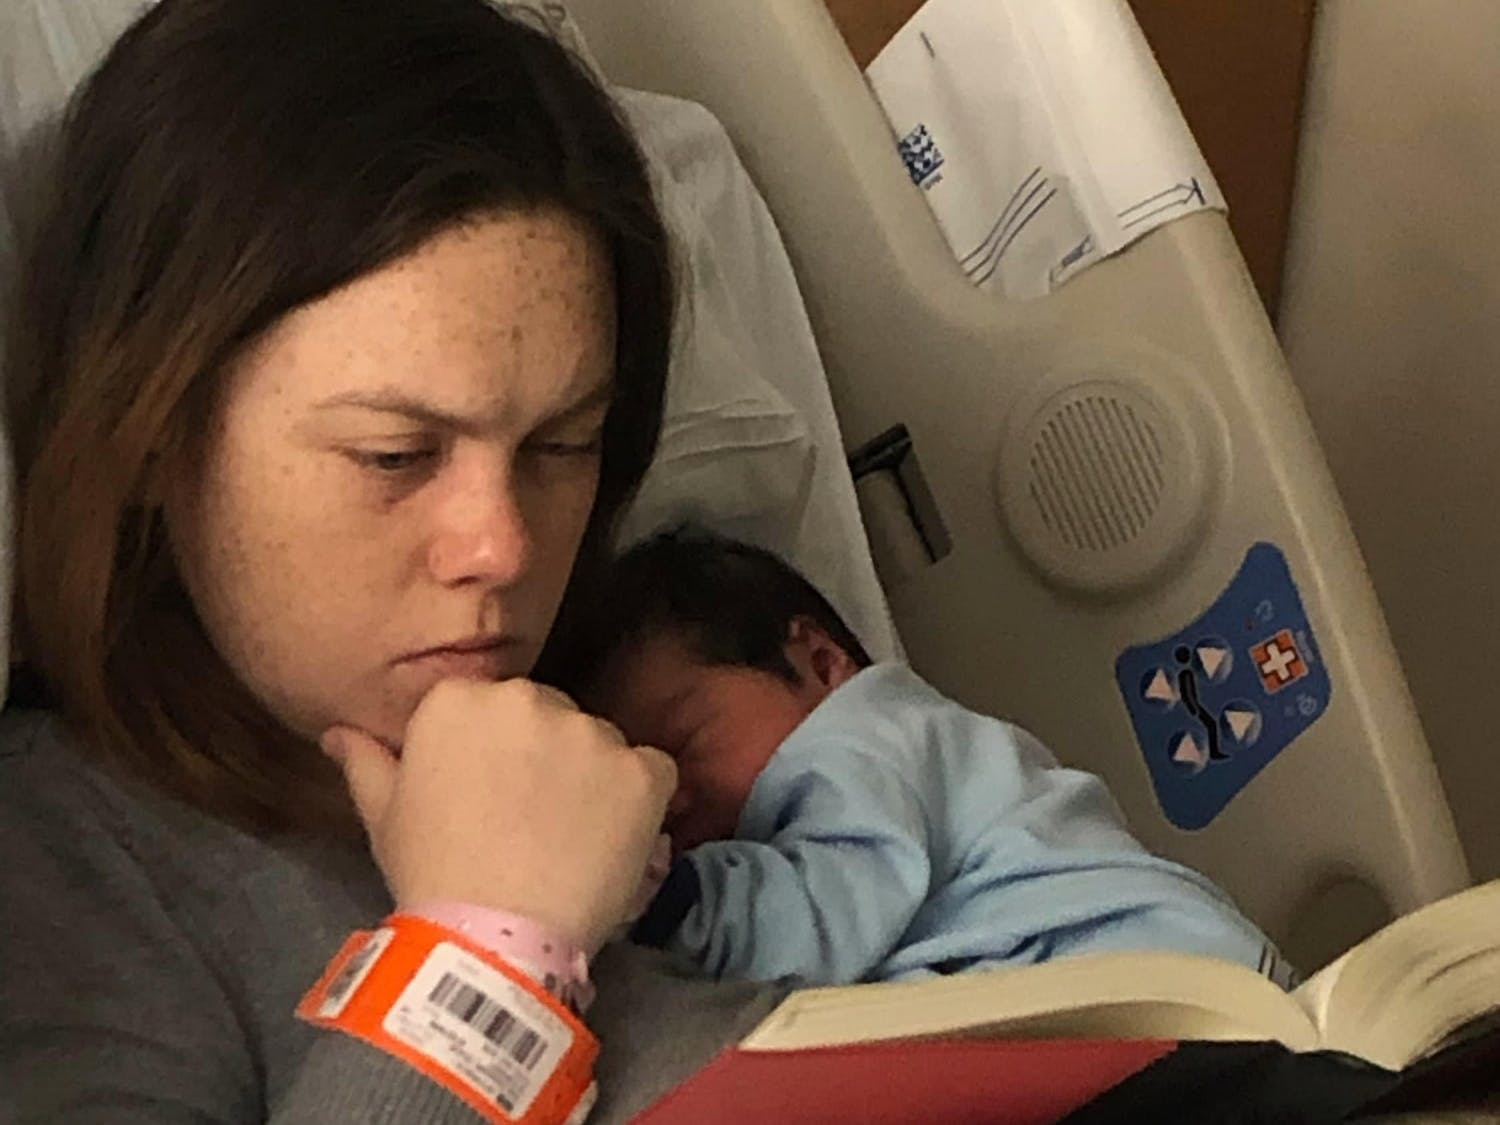 Elizabeth Sandoval studying with her daughter, Maria, shortly after she was born. Photo courtesy of Elizabeth Sandoval.